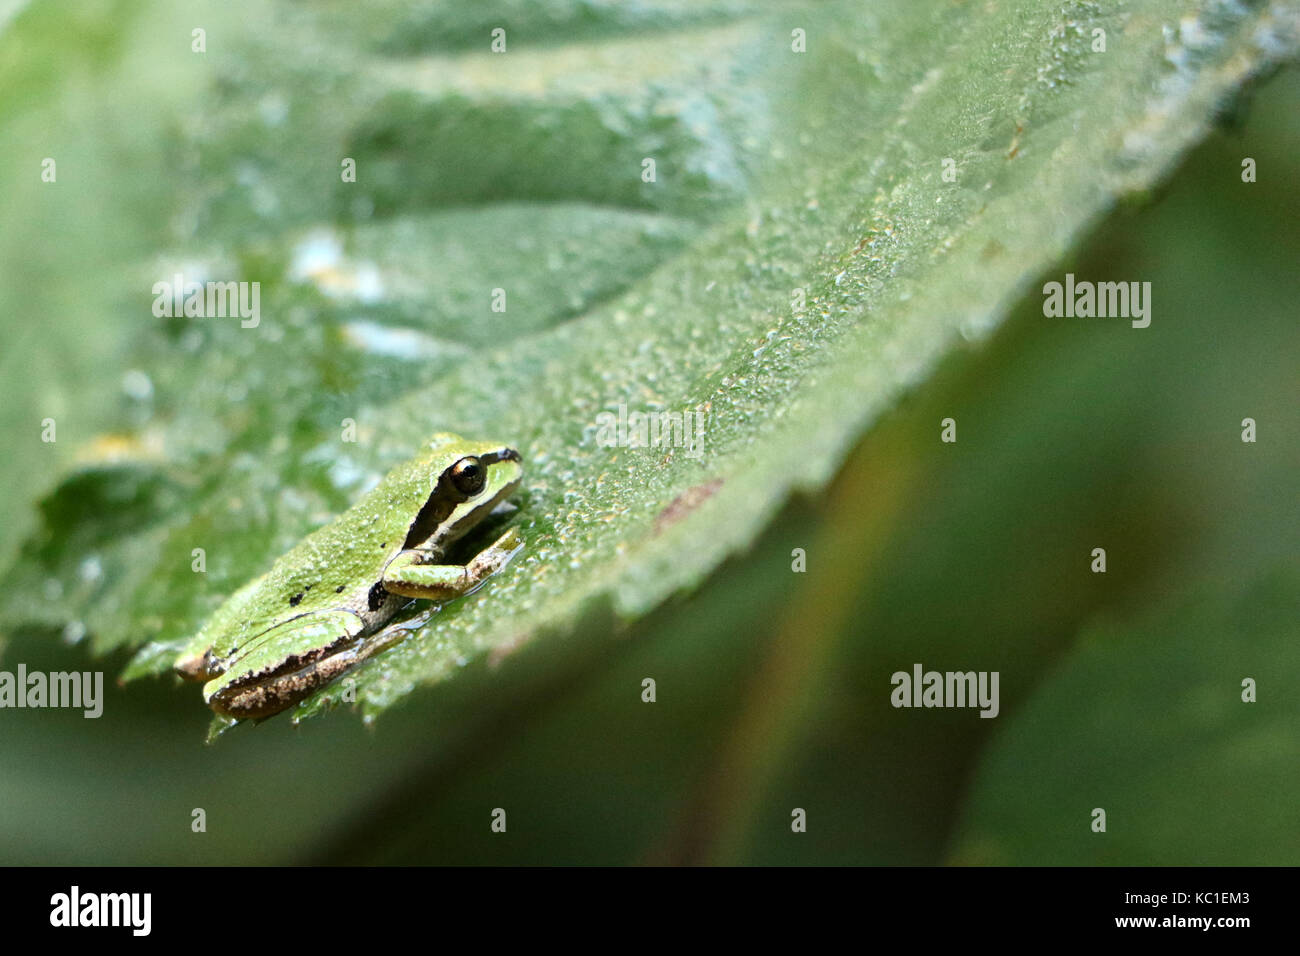 Pacific tree frog on a blackberry leaf - Stock Image